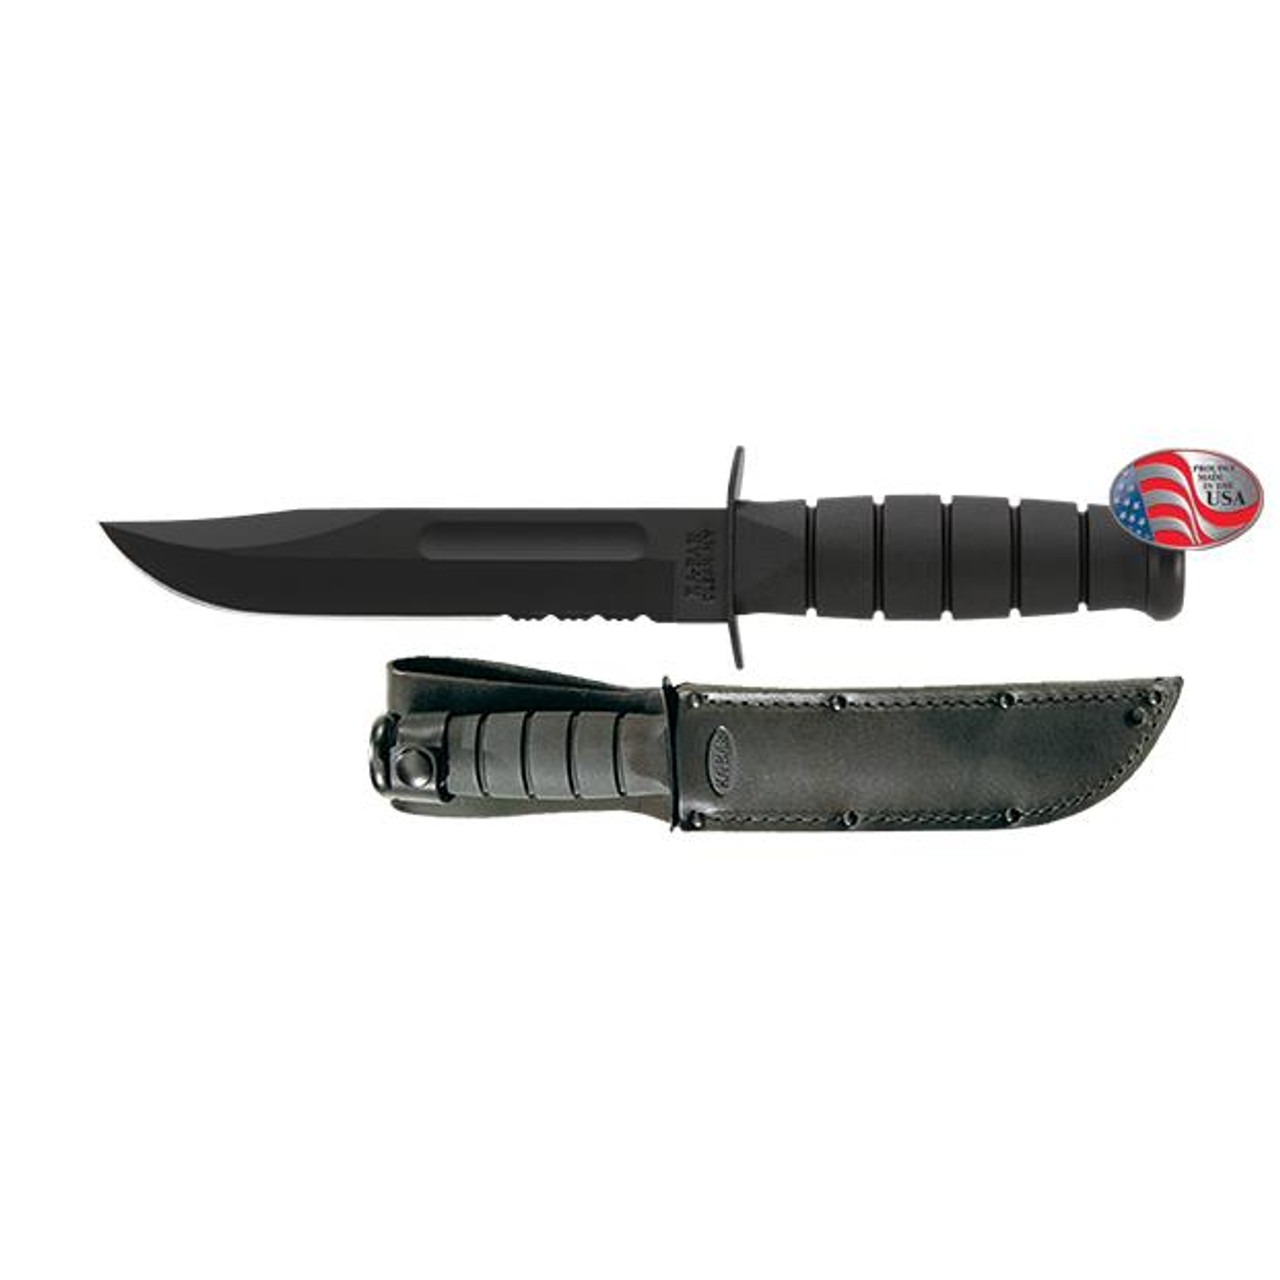 Full-size Black KA-BAR, Serrated Edge #1212 - GameMasters Outdoors